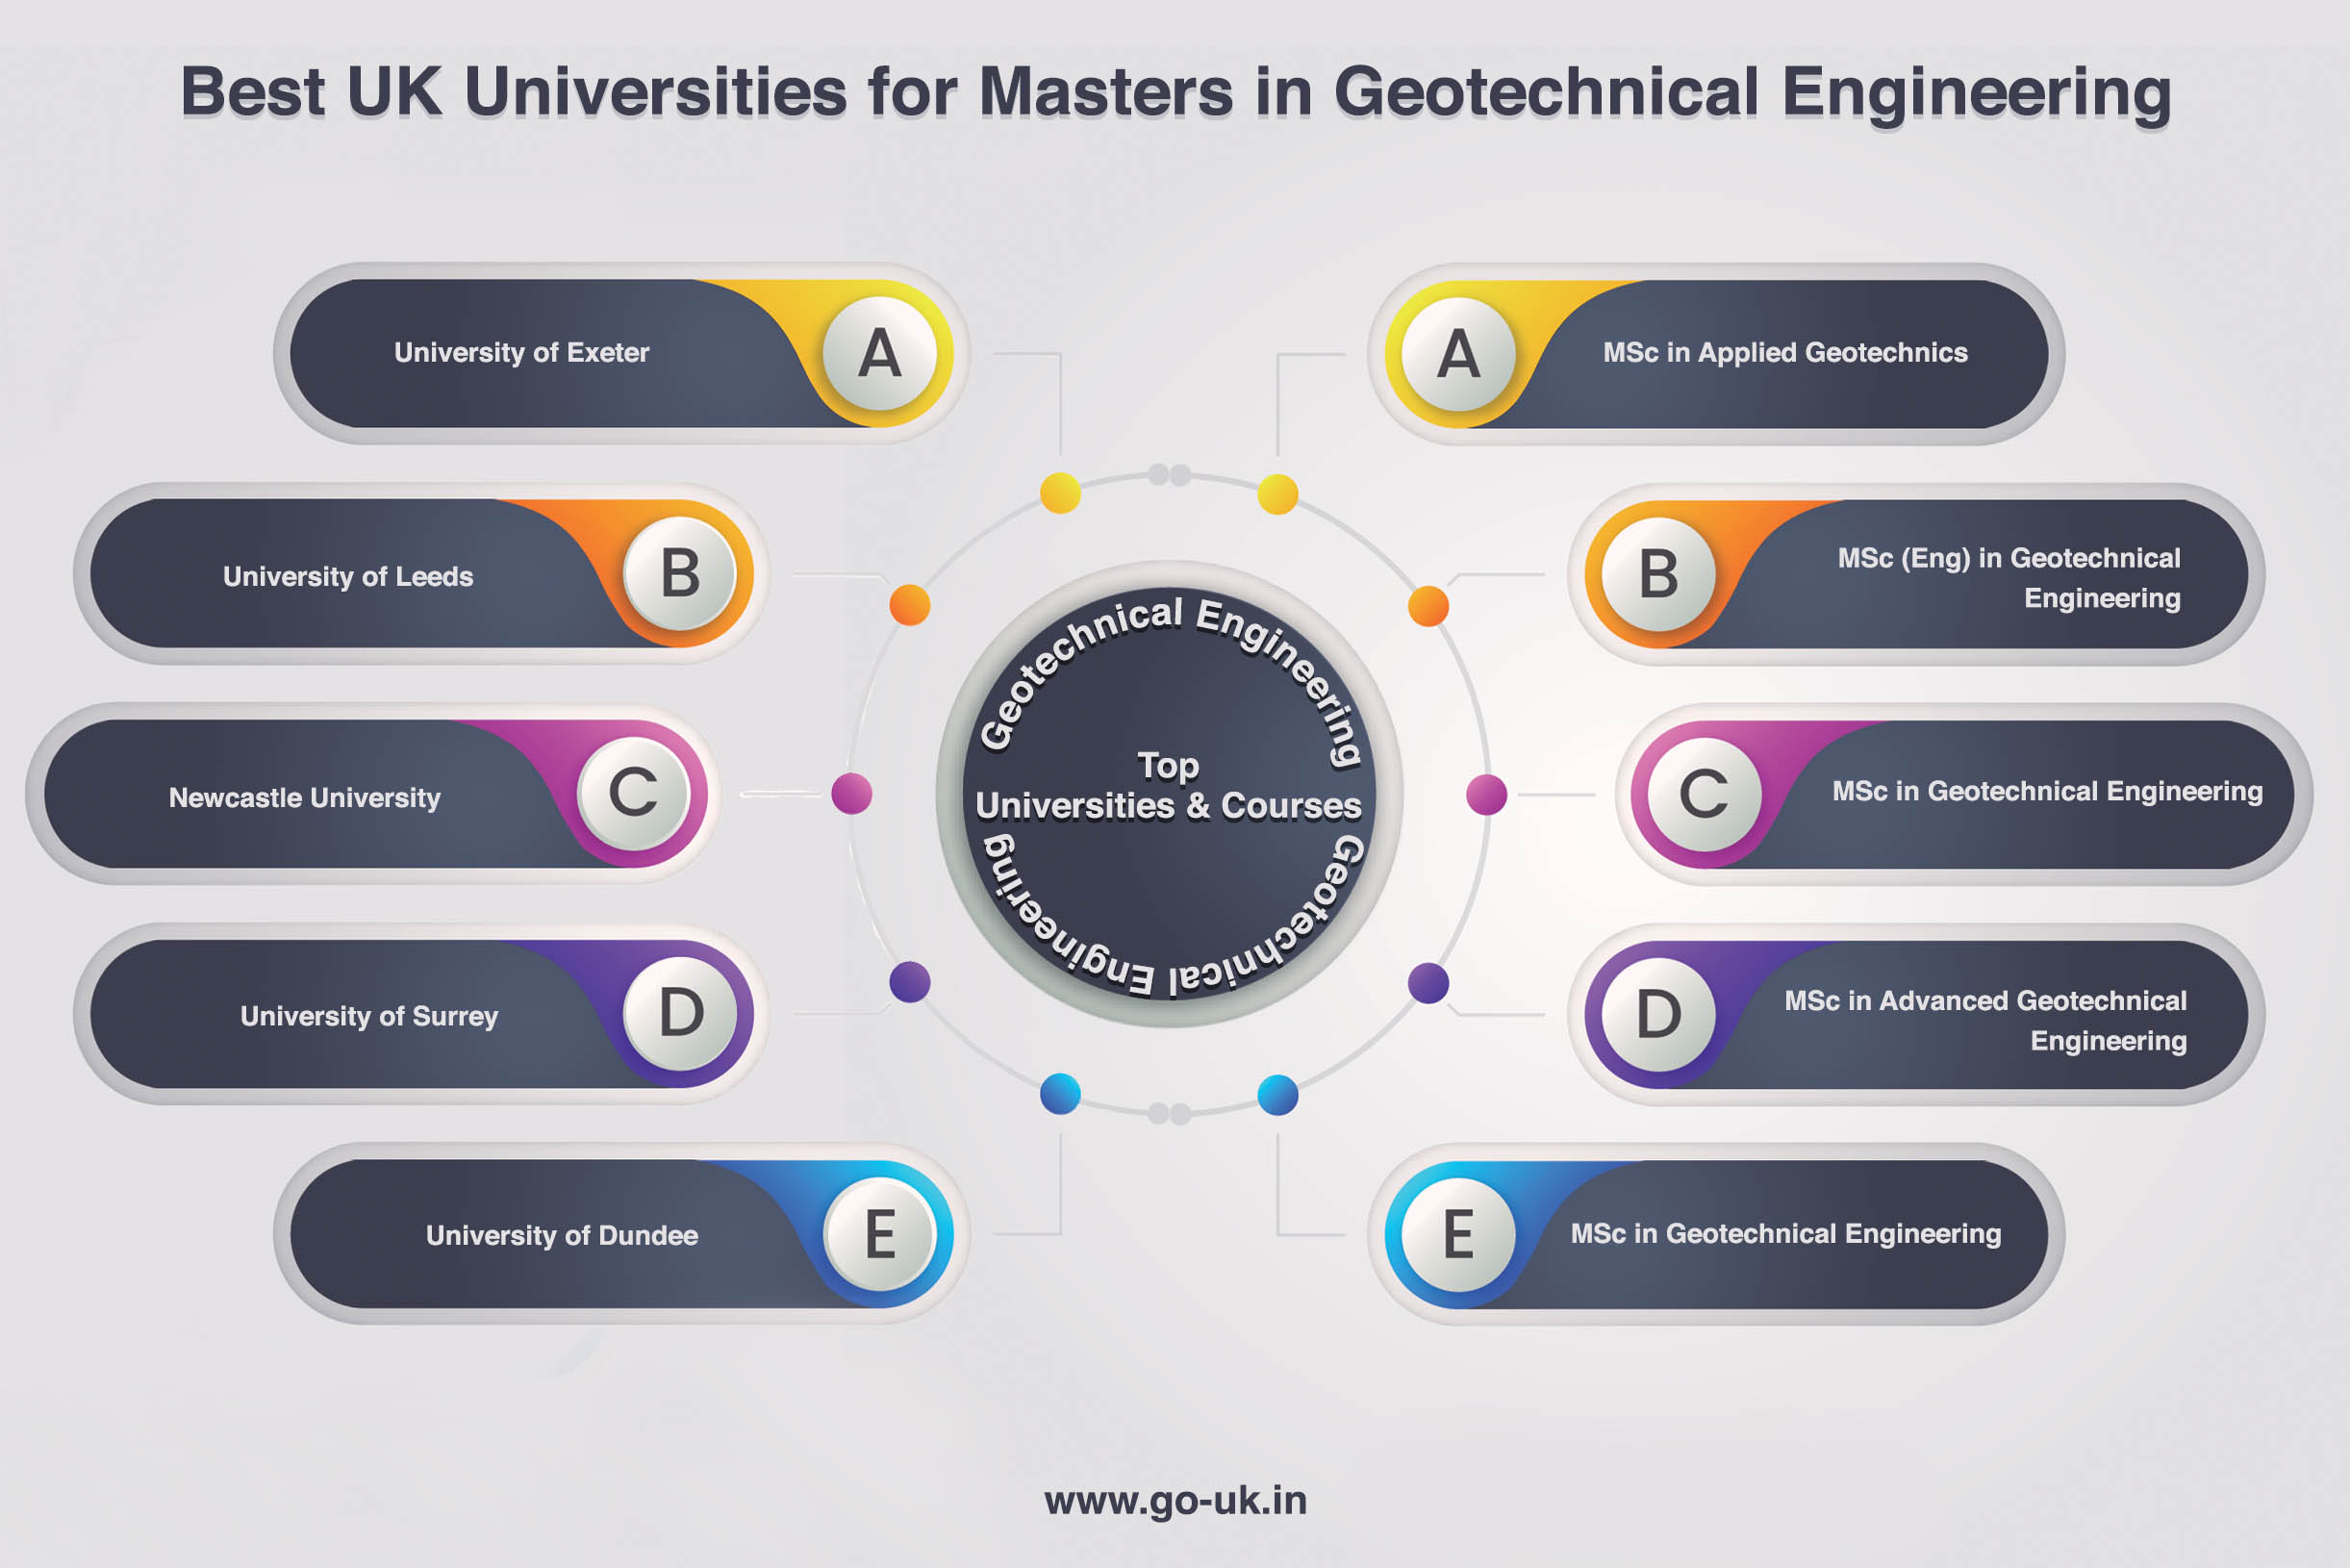 Best UK Universities for Masters in Geotechnical Engineering